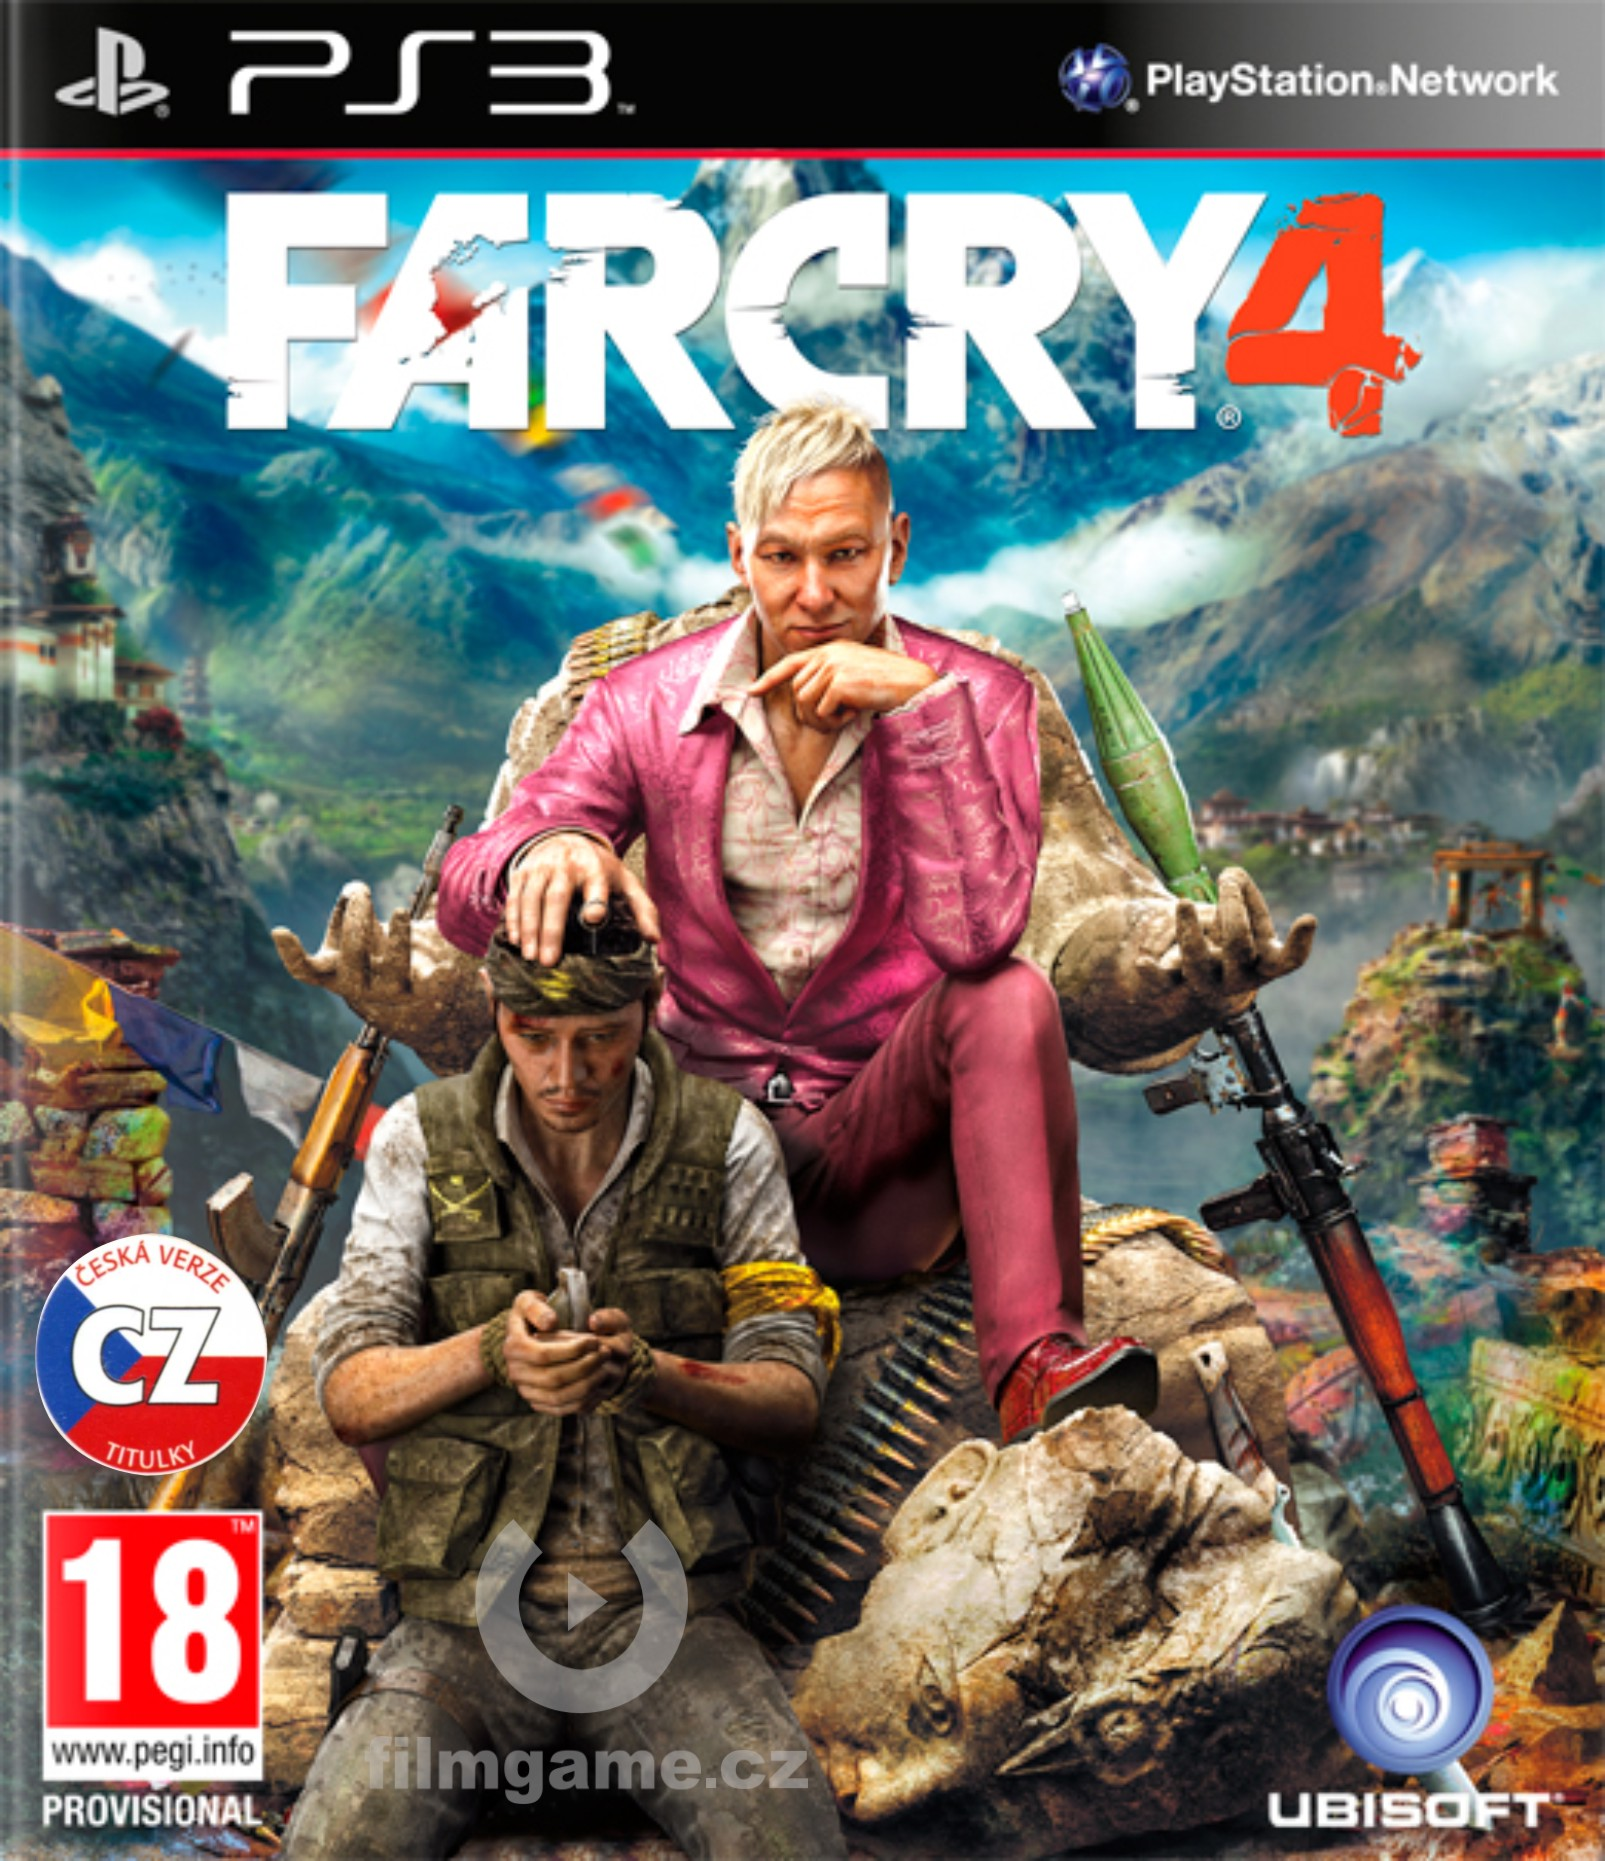 FAR CRY 4 CZ - PS3